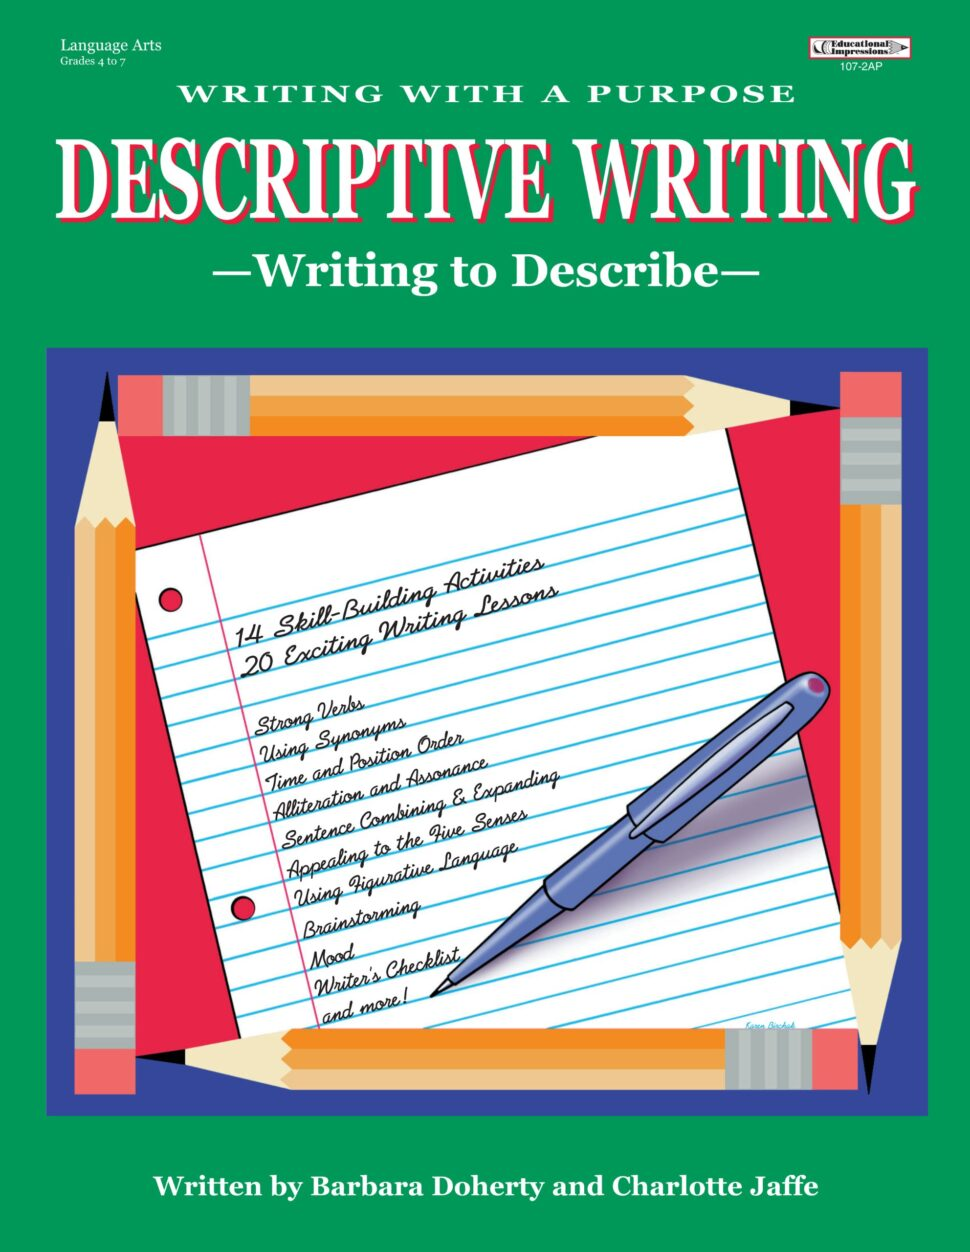 Large Size of Writing With Purpose Descriptive Jaffe Doherty Barbara Books 81bqe Md Zl Success Essay